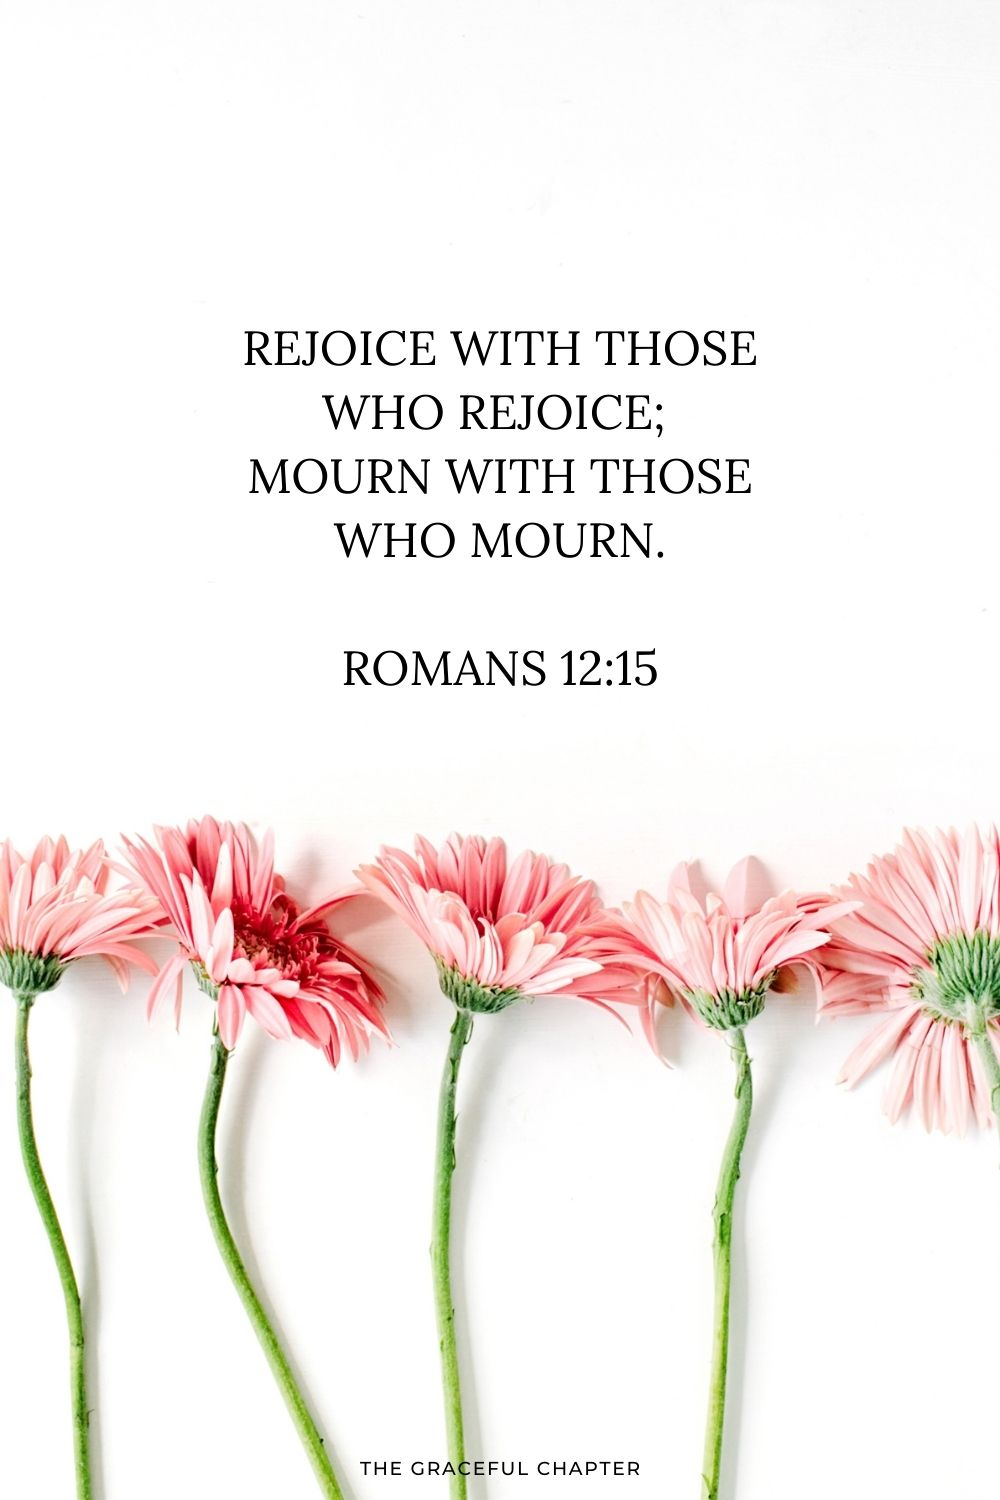 Rejoice with those who rejoice; mourn with those who mourn. Romans 12:15